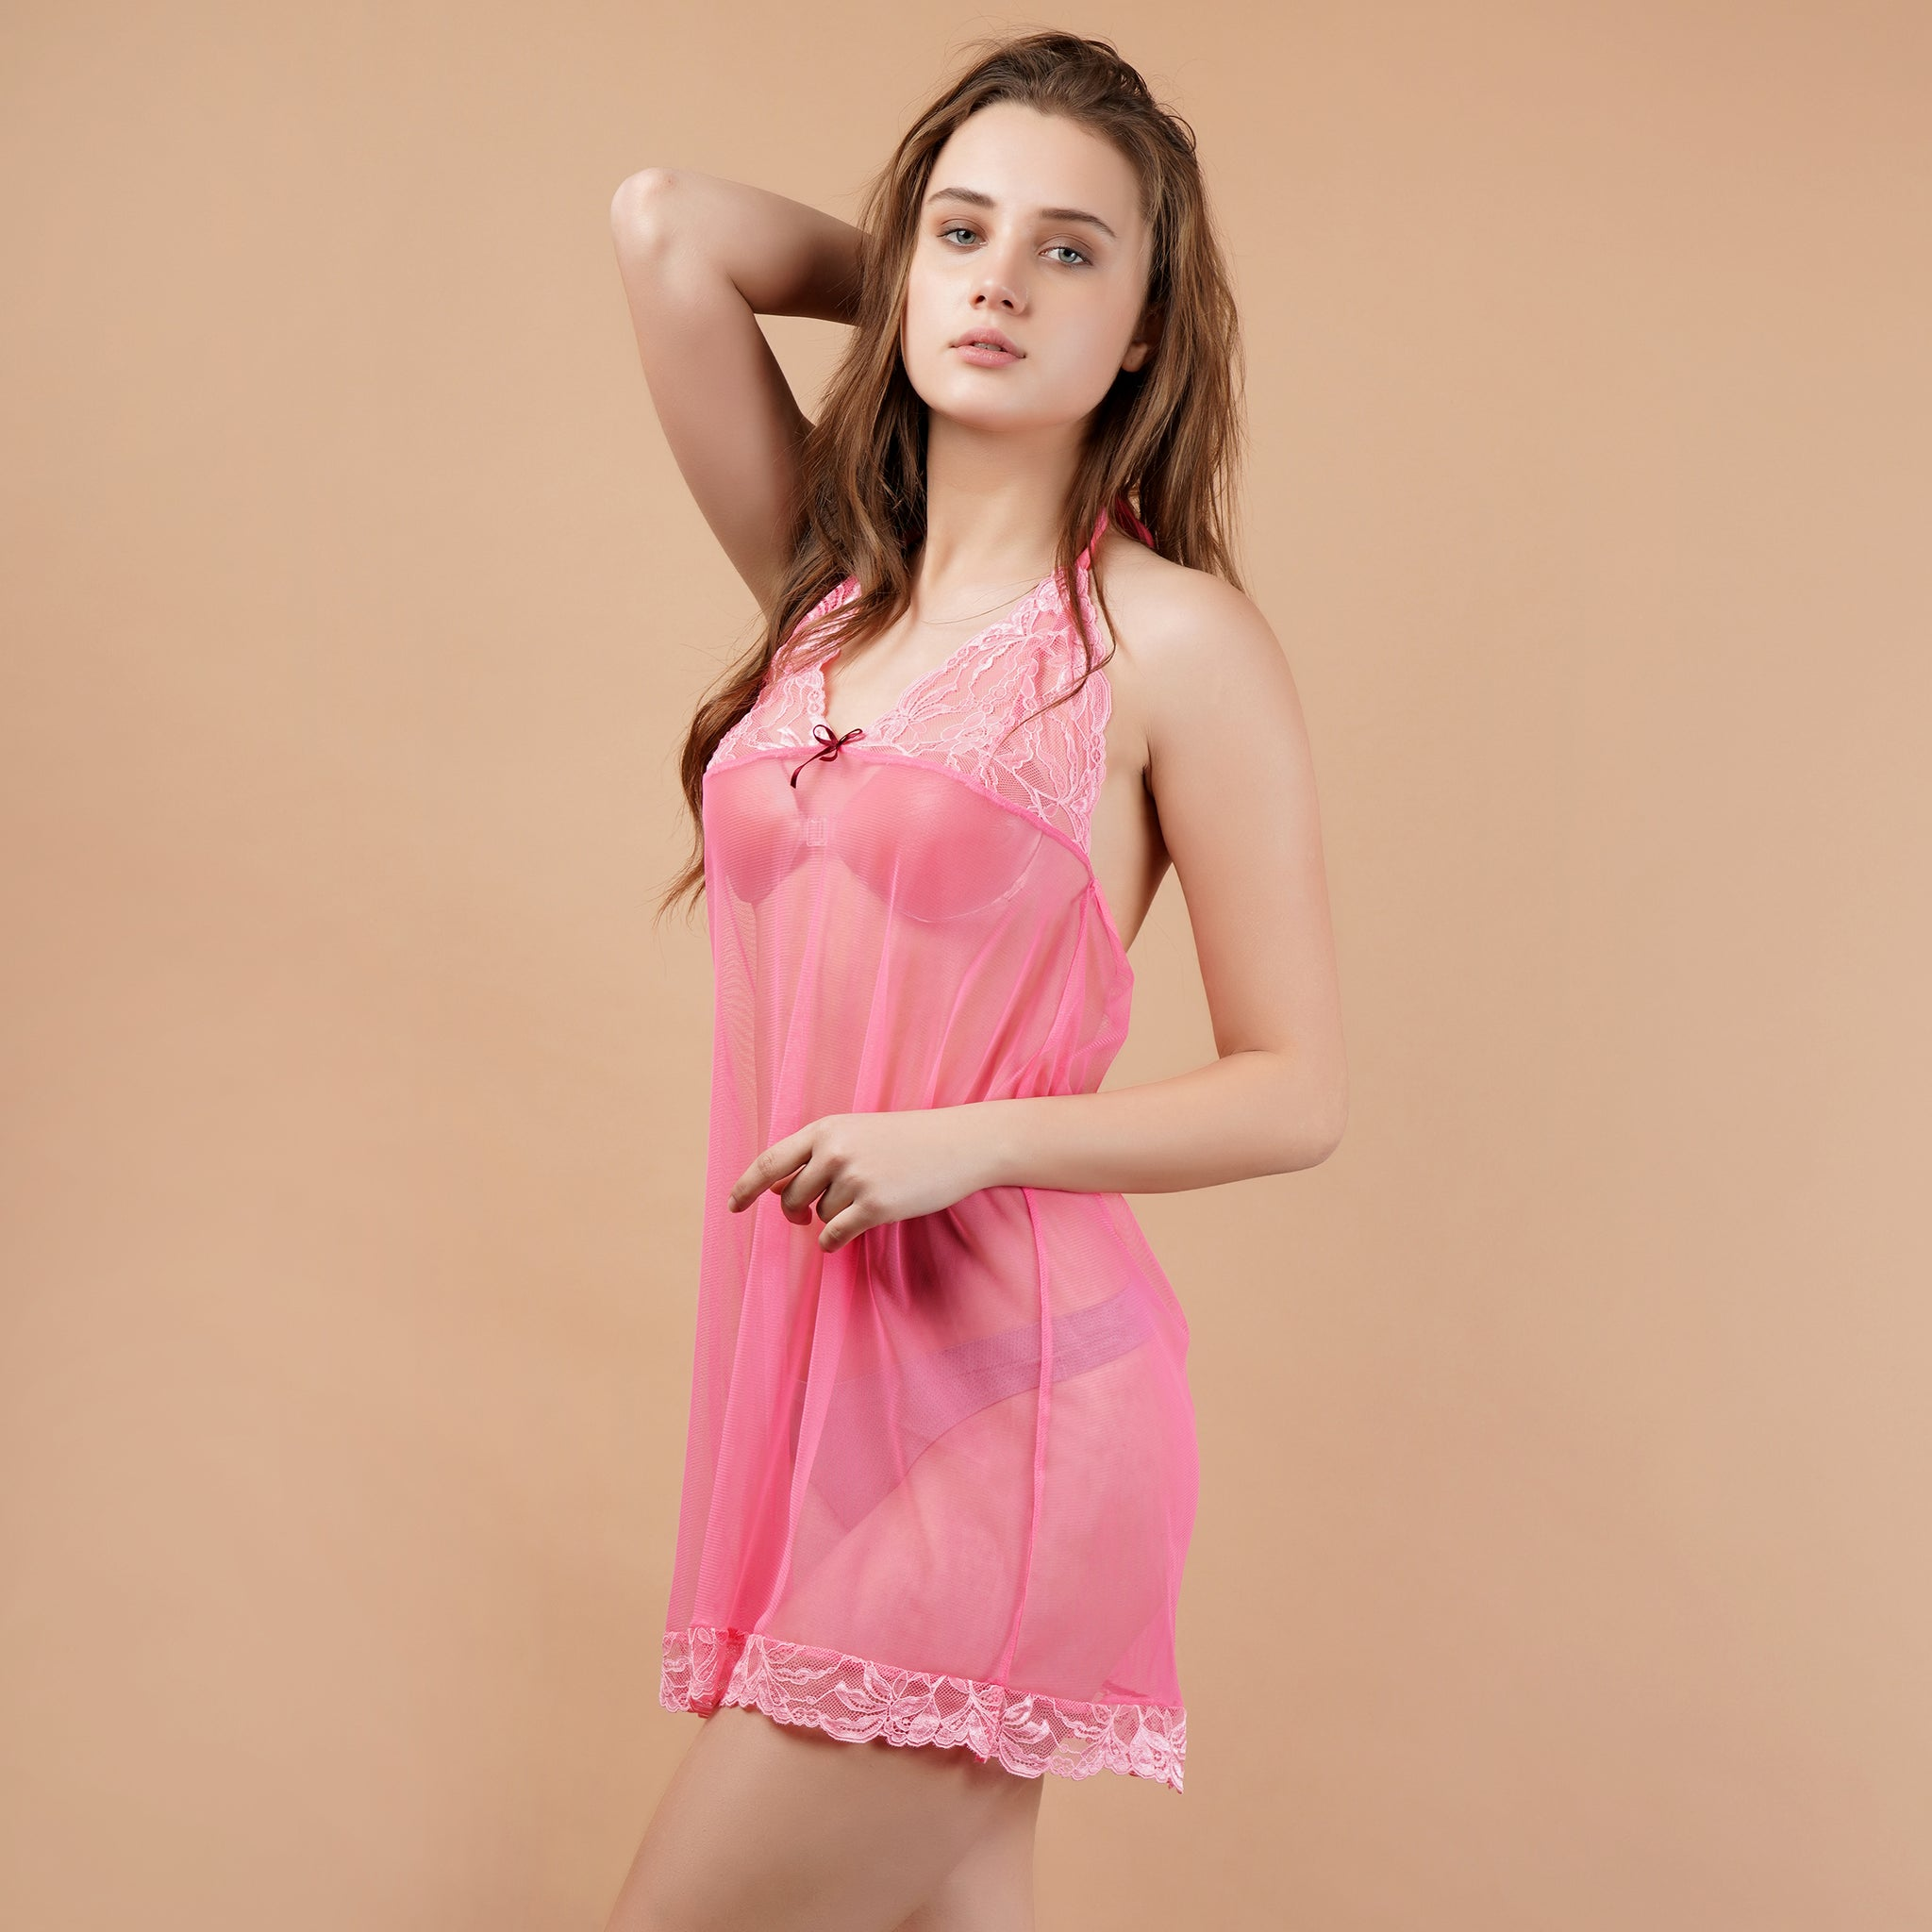 Ficuster Halter Neck Pink Floral Lace Babydoll Nightwear